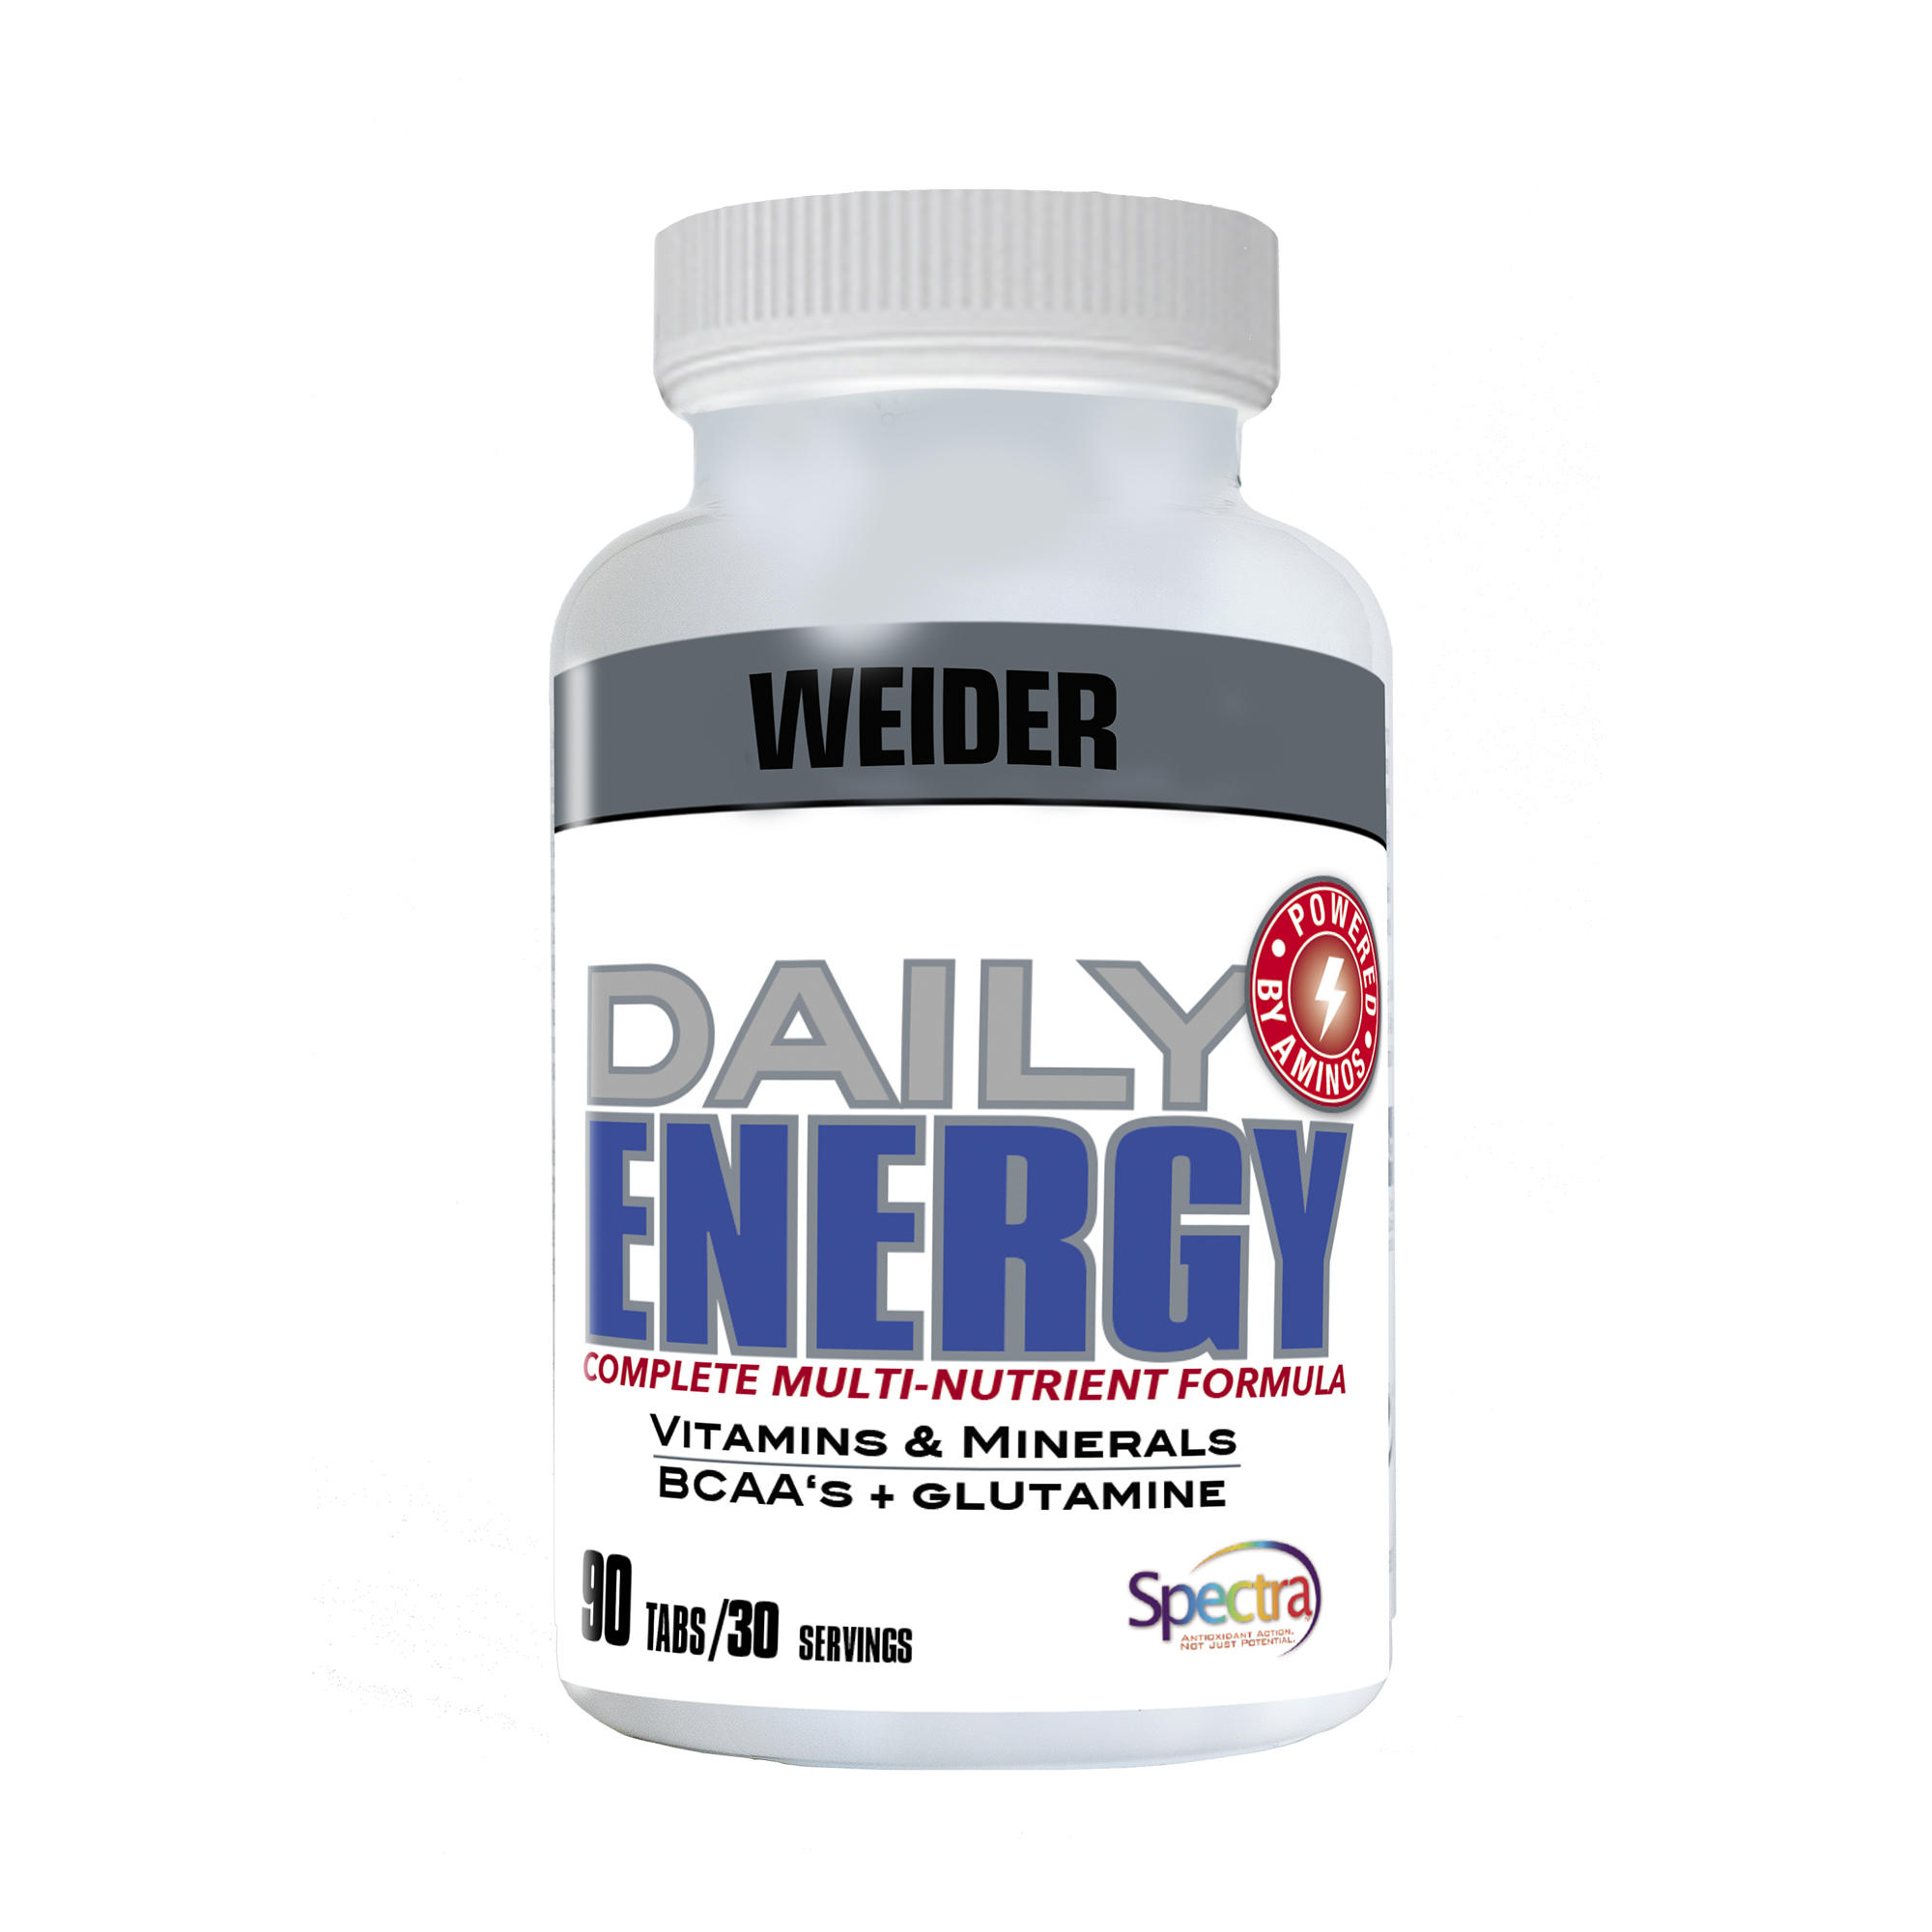 Daily energy Weider